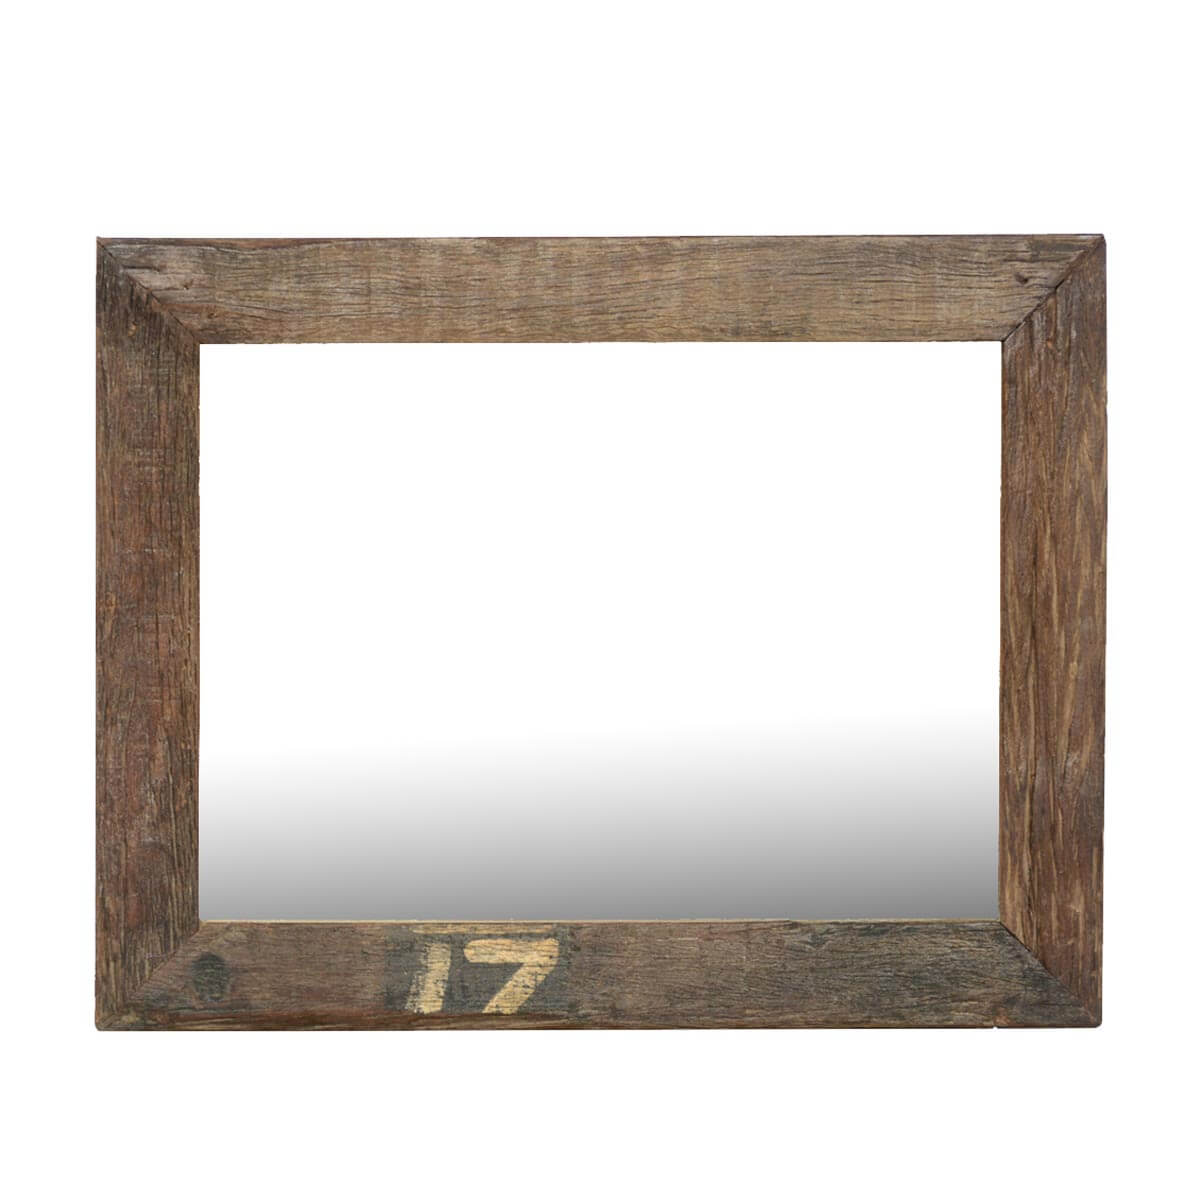 Lucky 17 rustic large reclaimed wood wall mirror w simple for Large wall mirror wood frame